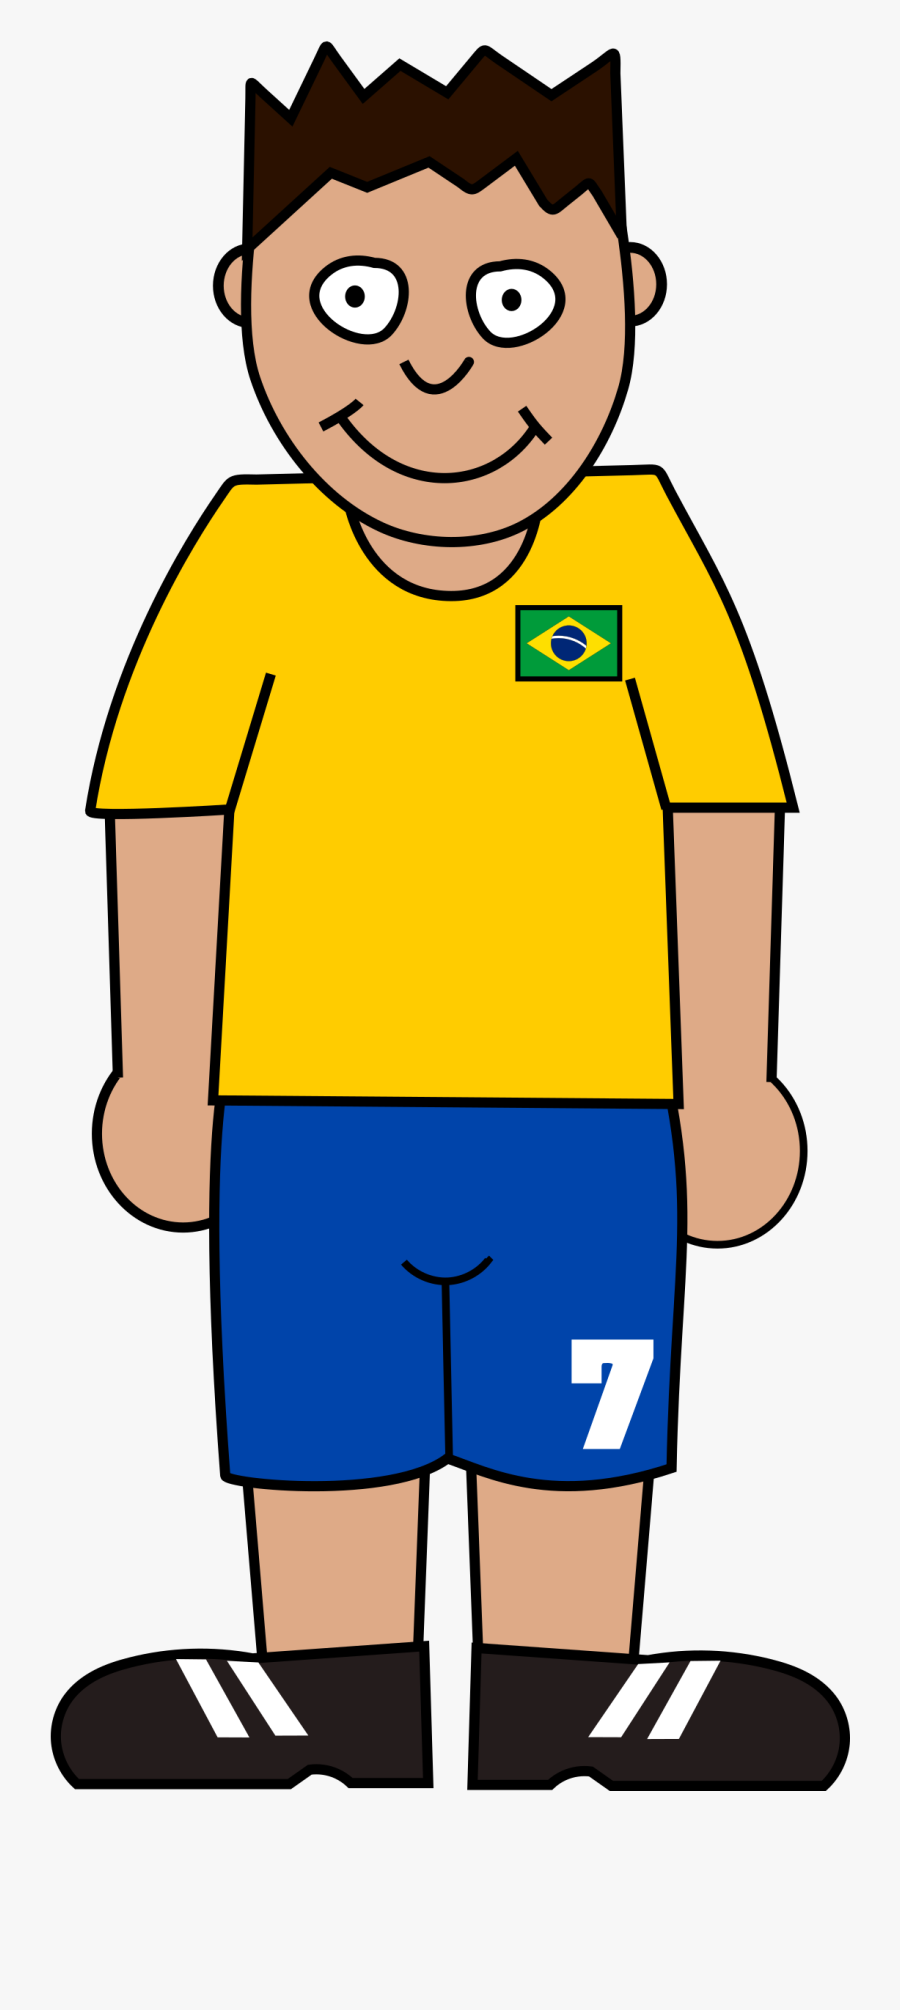 Soccer Player Clipart Standing - Standing Soccer Players Clipart, Transparent Clipart